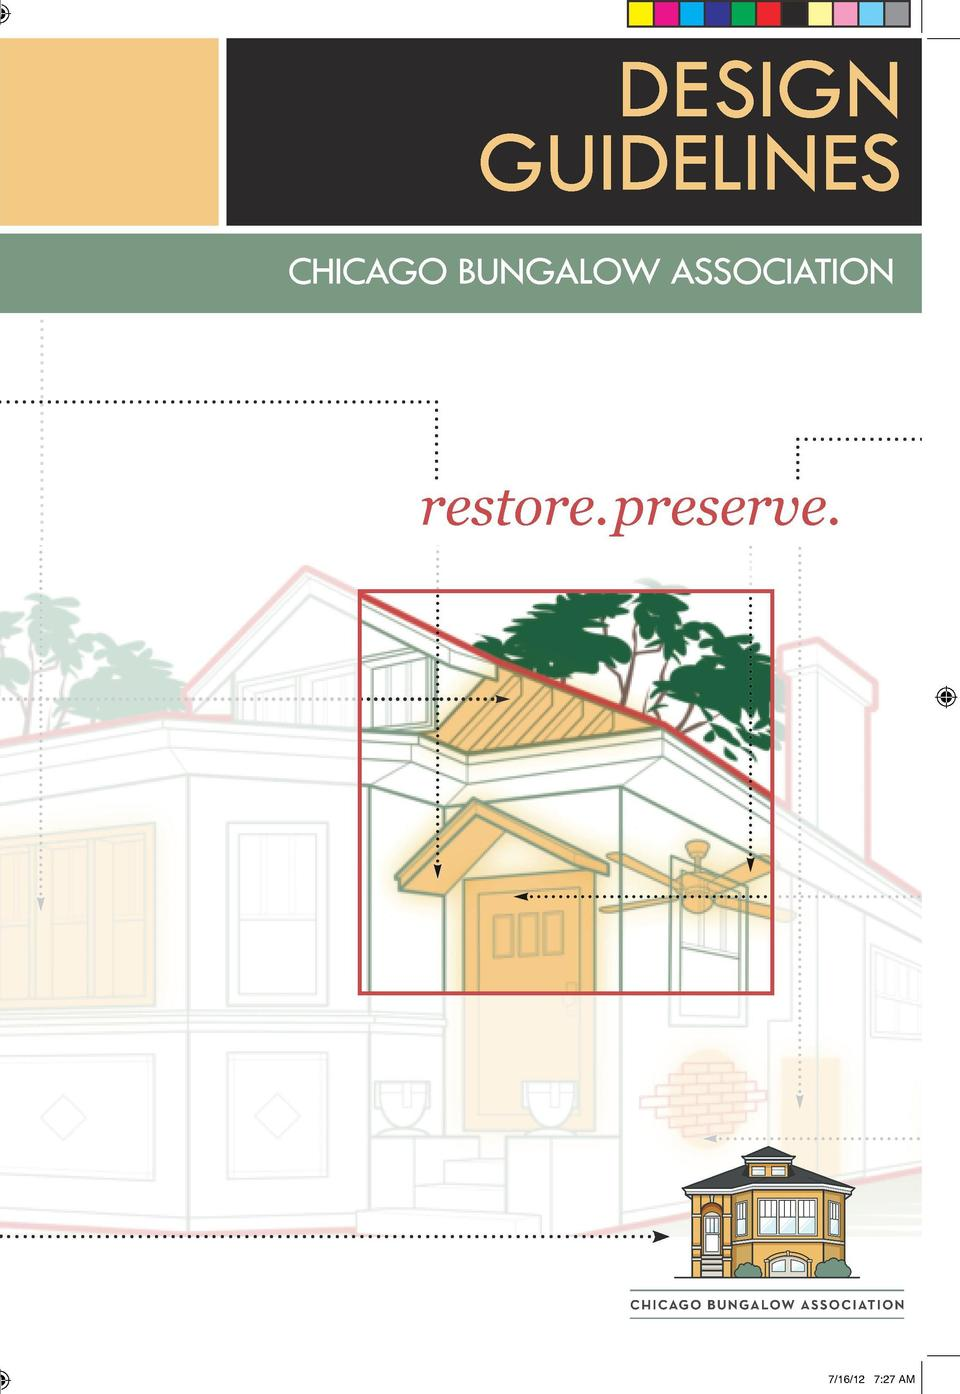 DESIGN GUIDELINES These Design Guidelines were funded by a grant from  CHICAGO BUNGALOW ASSOCIATION  restore.preserve. vis...